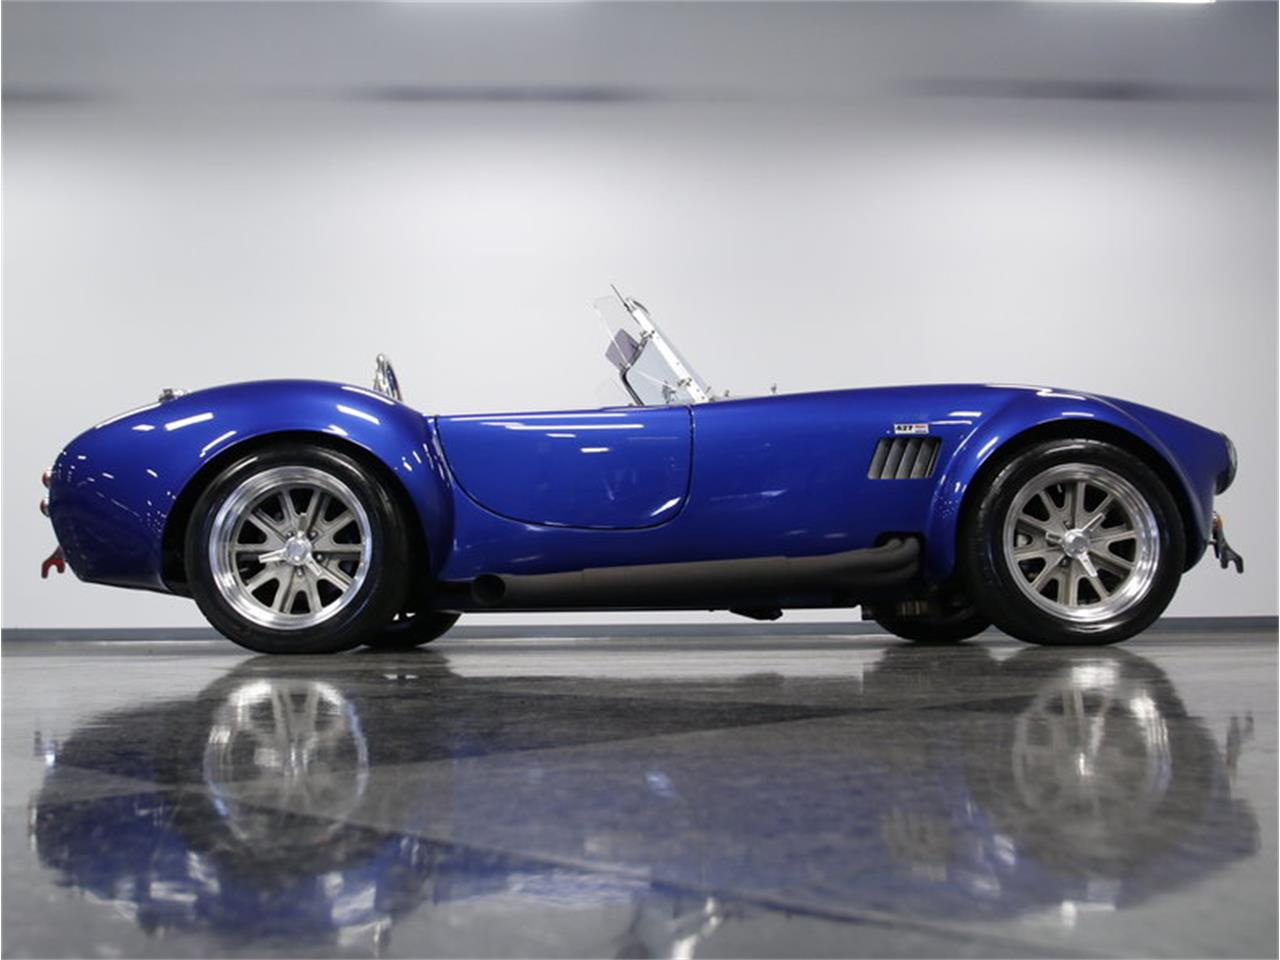 Large Picture of 1965 Backdraft Racing Cobra located in North Carolina - $59,995.00 - LB11